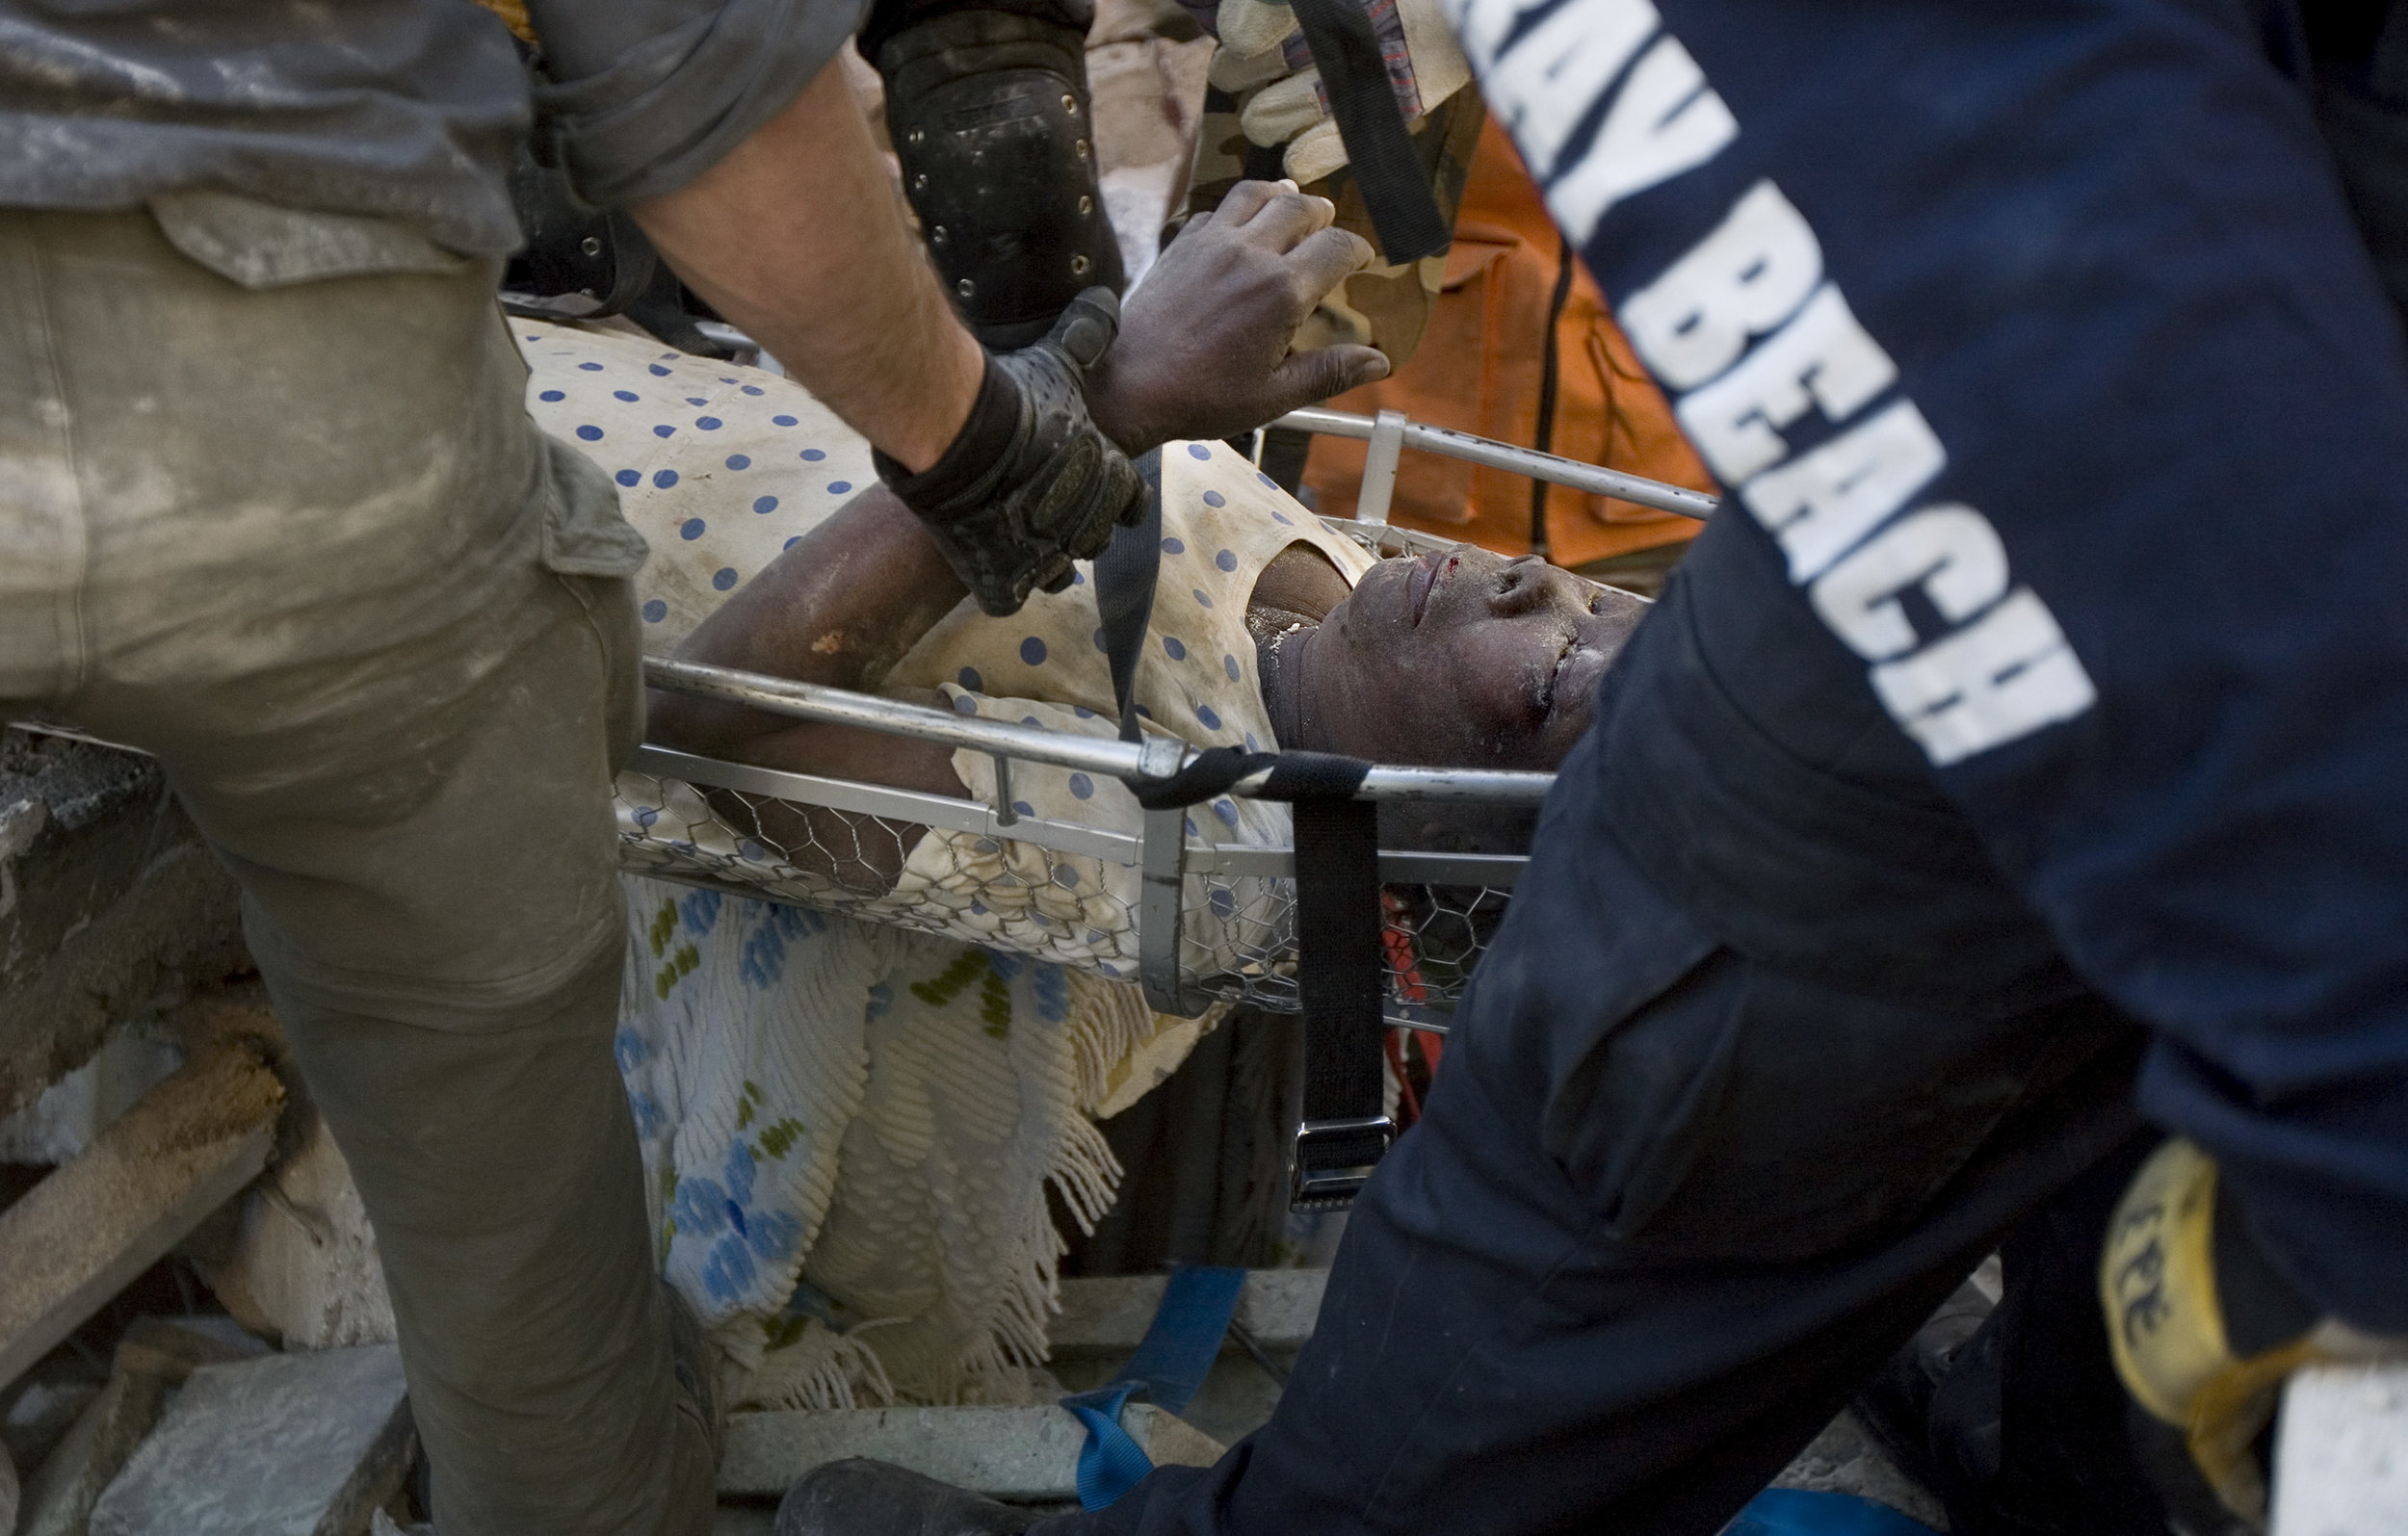 sabel Azou, 58, is pulled out of the rubble alive and conscious after an hours long rescue operation by the Delray Beach fire department and the Rapid Latino America Search and Rescue Team. Three of her children were presumed alive and still trapped under the rubble days after a devastating earthquake struck Haiti.